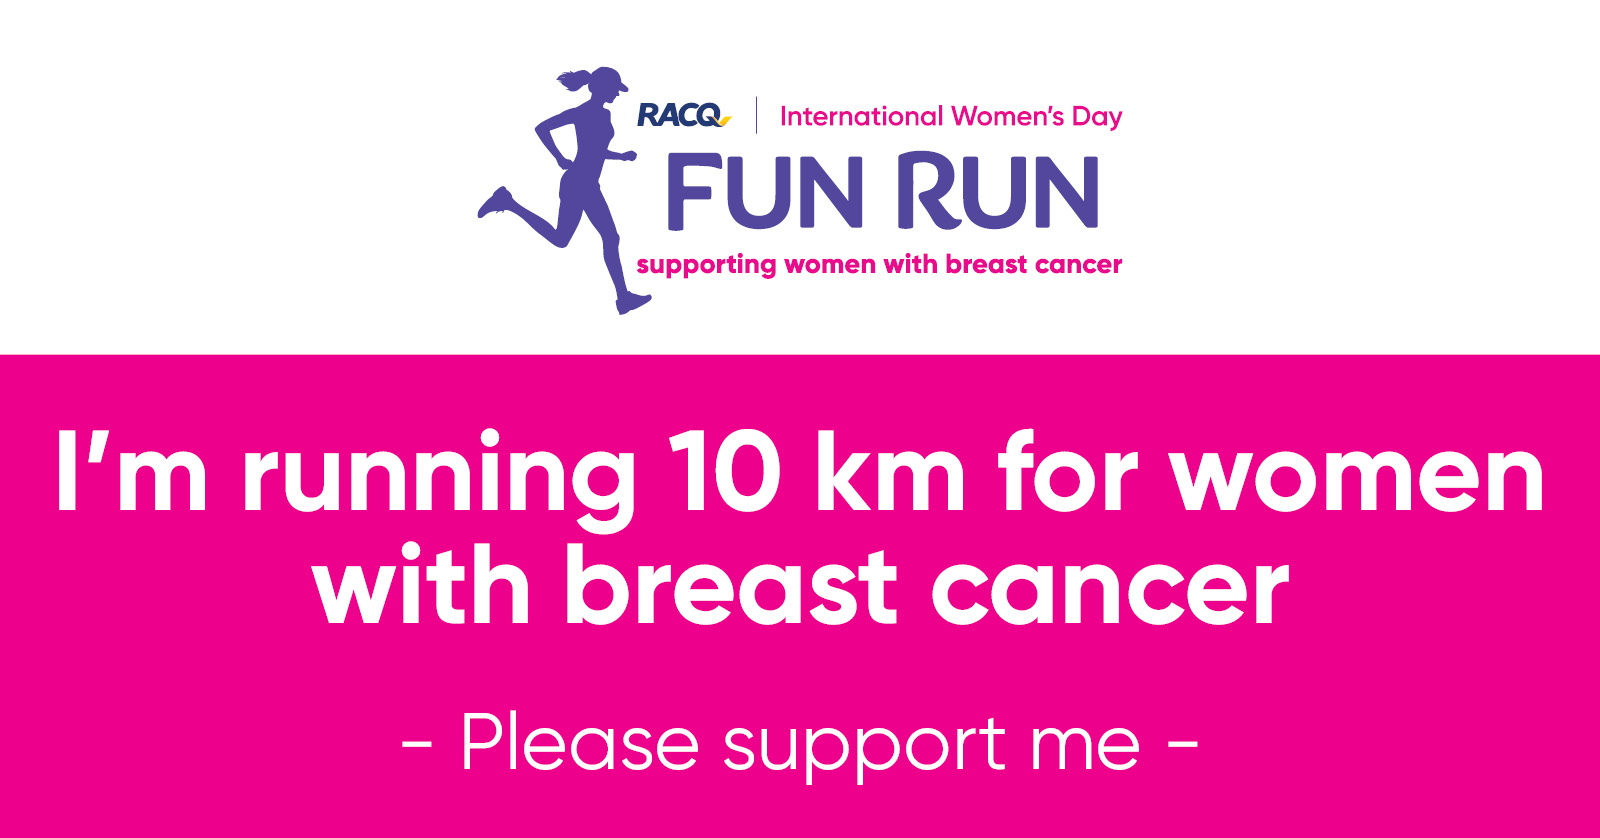 Facebook - I'm running 10 km - please support